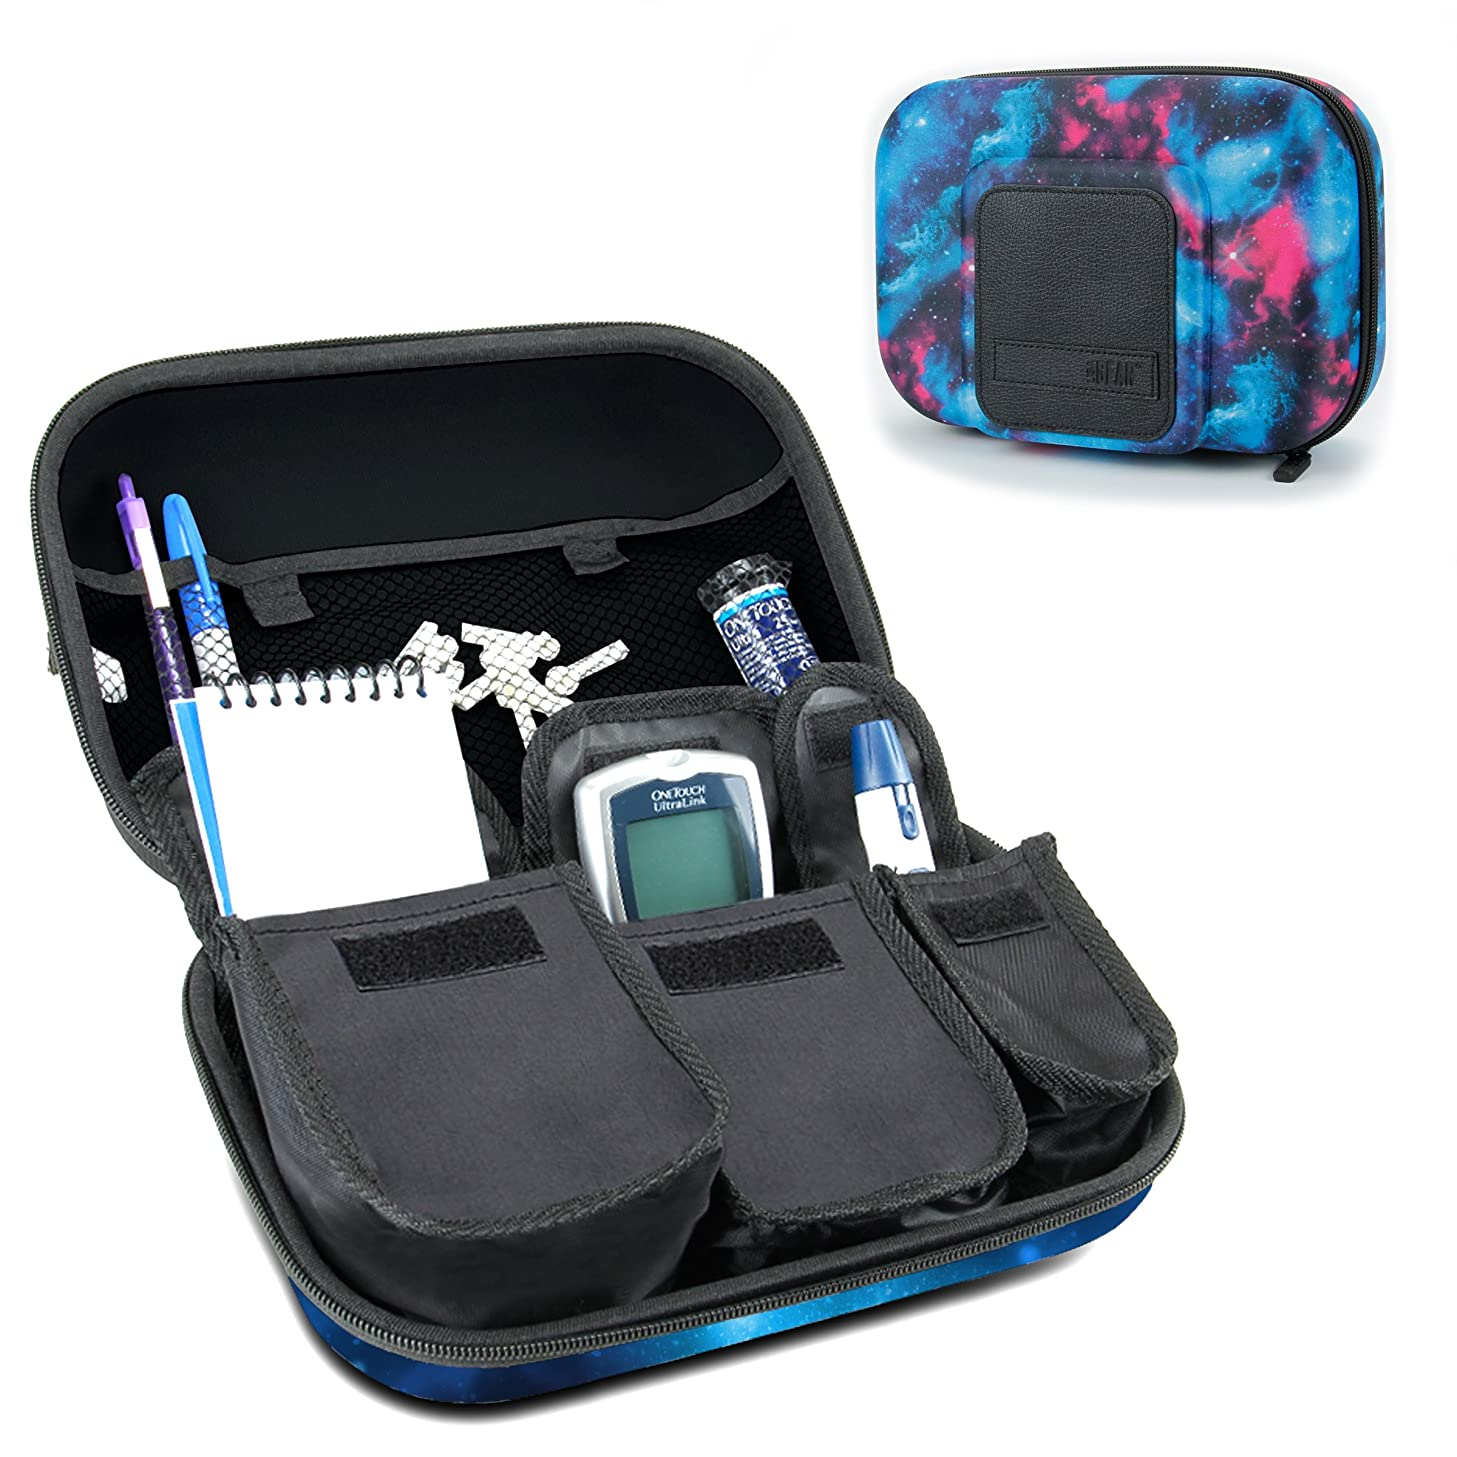 USA Gear Diabetic Supplies Travel Case Organizer for Blood Glucose Monitoring Systems, Syringes, Pens, Insulin Vials and Lancets - Compatible with ACCU-CHEK Nano, Bayer Contour, TRUEtest - Galaxy